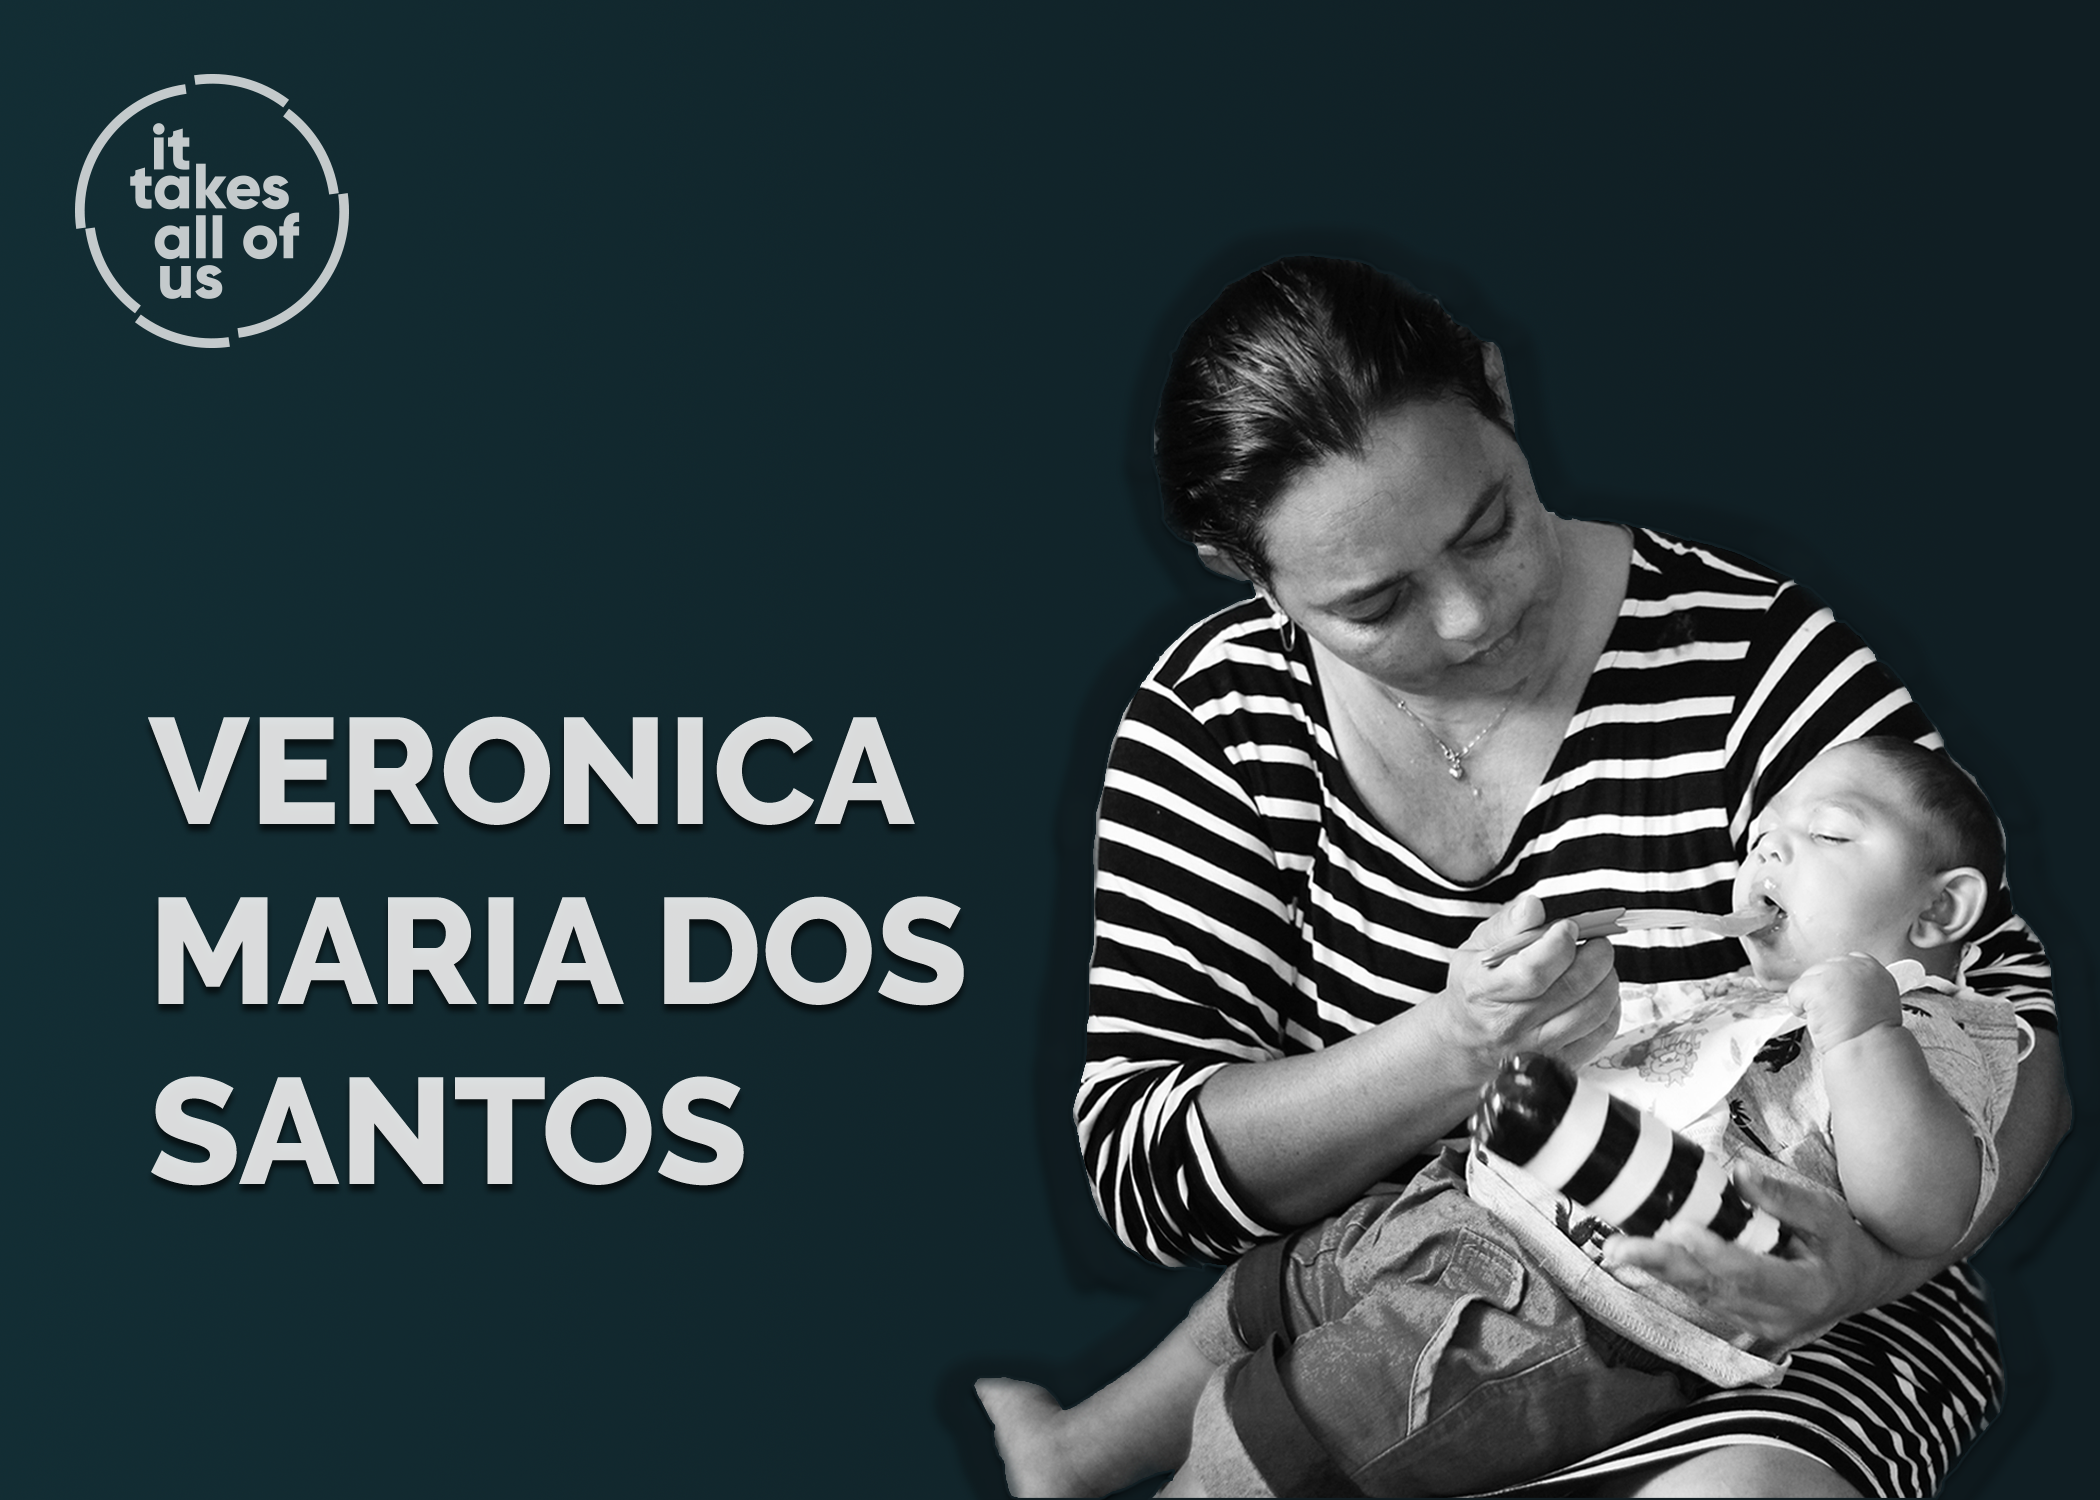 Veronica Maria dos Santos is a Brazilian mother of four, living in one of the poorest neighborhoods in the outskirts of Recife, Brazil. A month before her youngest child's birth, her doctor told her baby Joao would be born with microcephaly, most likely resulting from a Zika infection. After Joao's birth, Veronica had to quit her job in order to prioritize Joao's health and development. Nowadays, Veronica spends her time in and out of doctor appointments with her son, often traveling long hours by bus to get Joao the care he needs. Due to the severeness of Joao's case, finding the best care for him has been challenging. Veronica joined a tight knit group of mothers caring for children with Zika-related microcephaly. They meet several times a week at different clinics and group therapy sessions, where they provide support, friendship, and strength to one another.